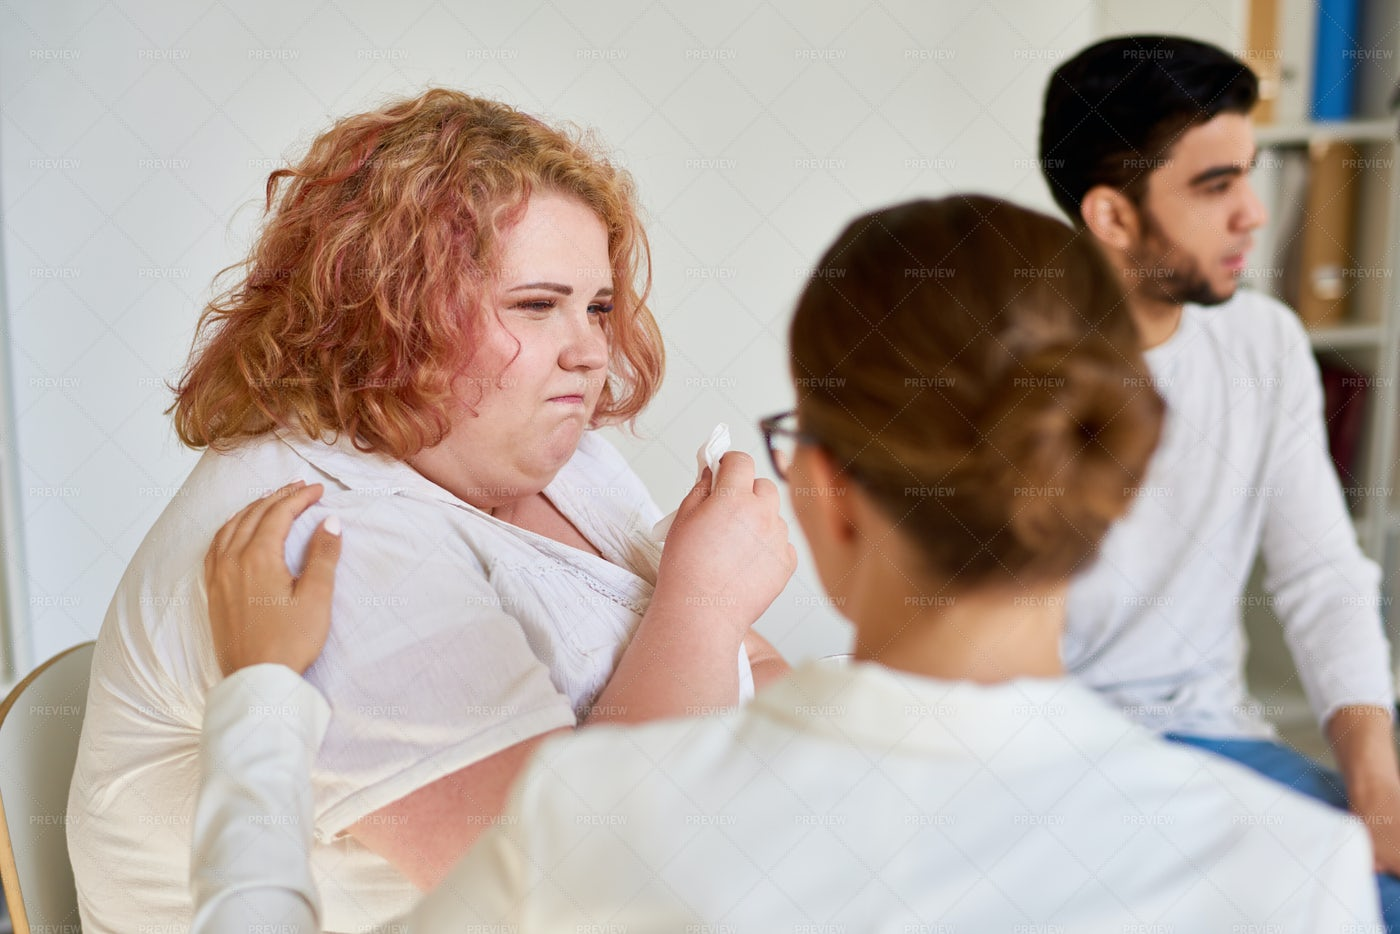 Obese Young Woman Crying In Support...: Stock Photos